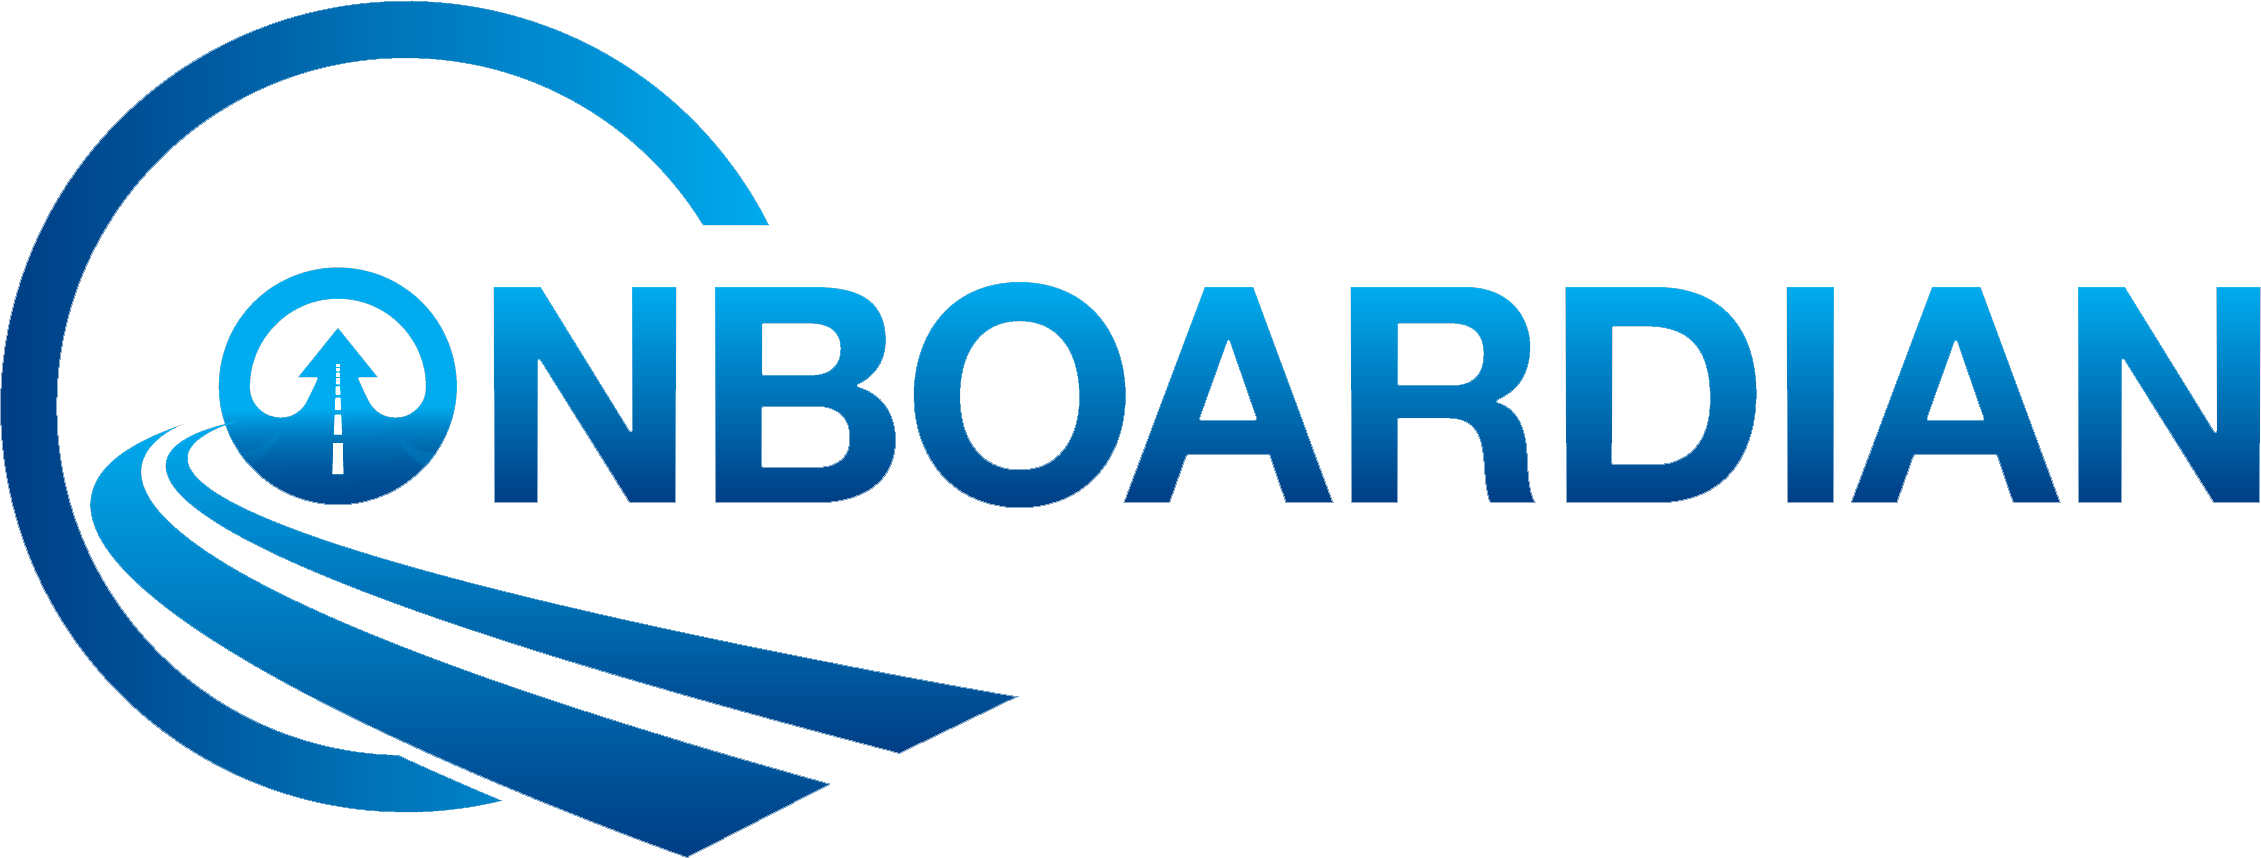 It is our Onboardian logo with our name and a road going into the logo and ending as its going behind it.